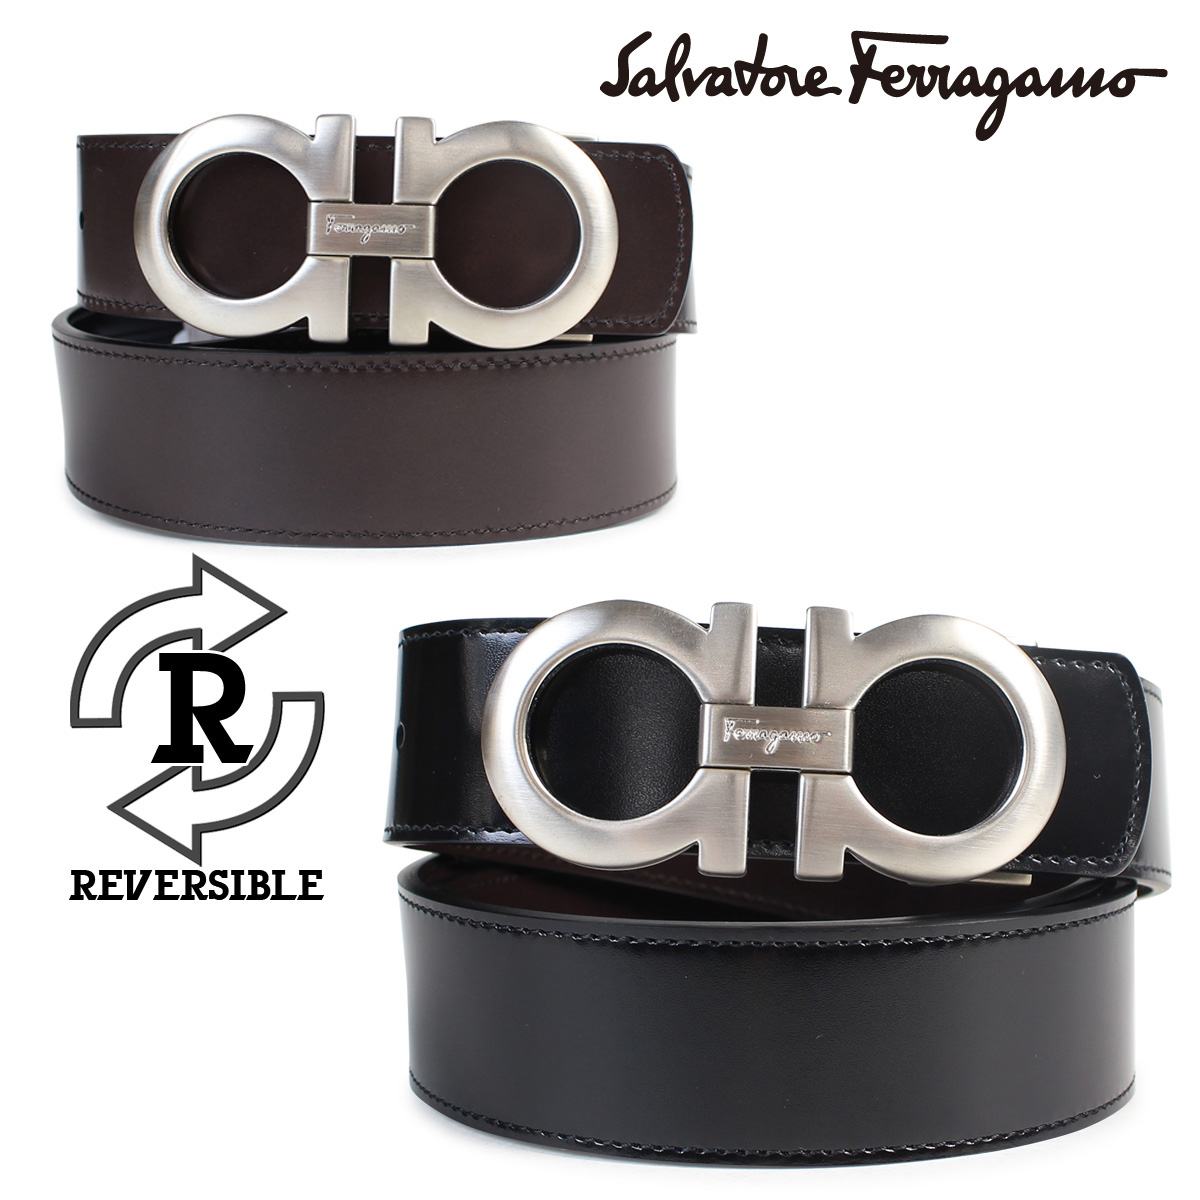 Real Ferragamo Belt >> Ferragamo Belt Men Genuine Leather Salvatore Ferragamo リバーシブルサルヴァトーレビジネス Wedding Ceremony 3 6 Shinnyu Load